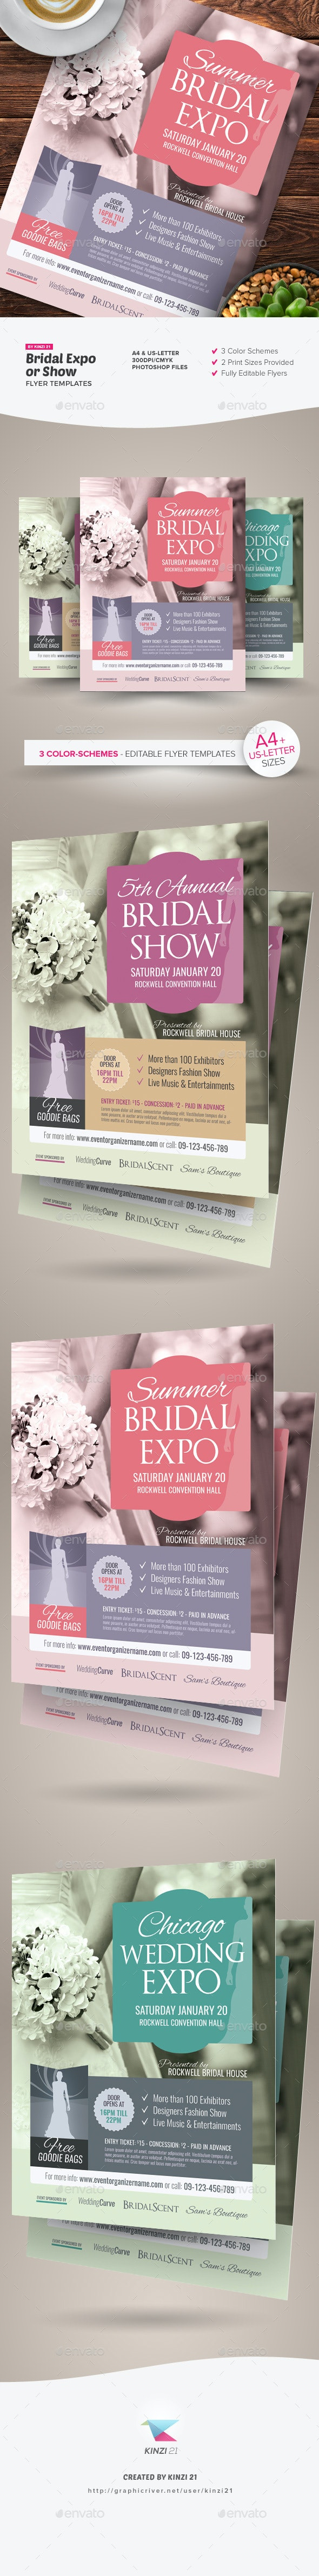 Bridal Expo or Show Flyer Templates - Miscellaneous Events